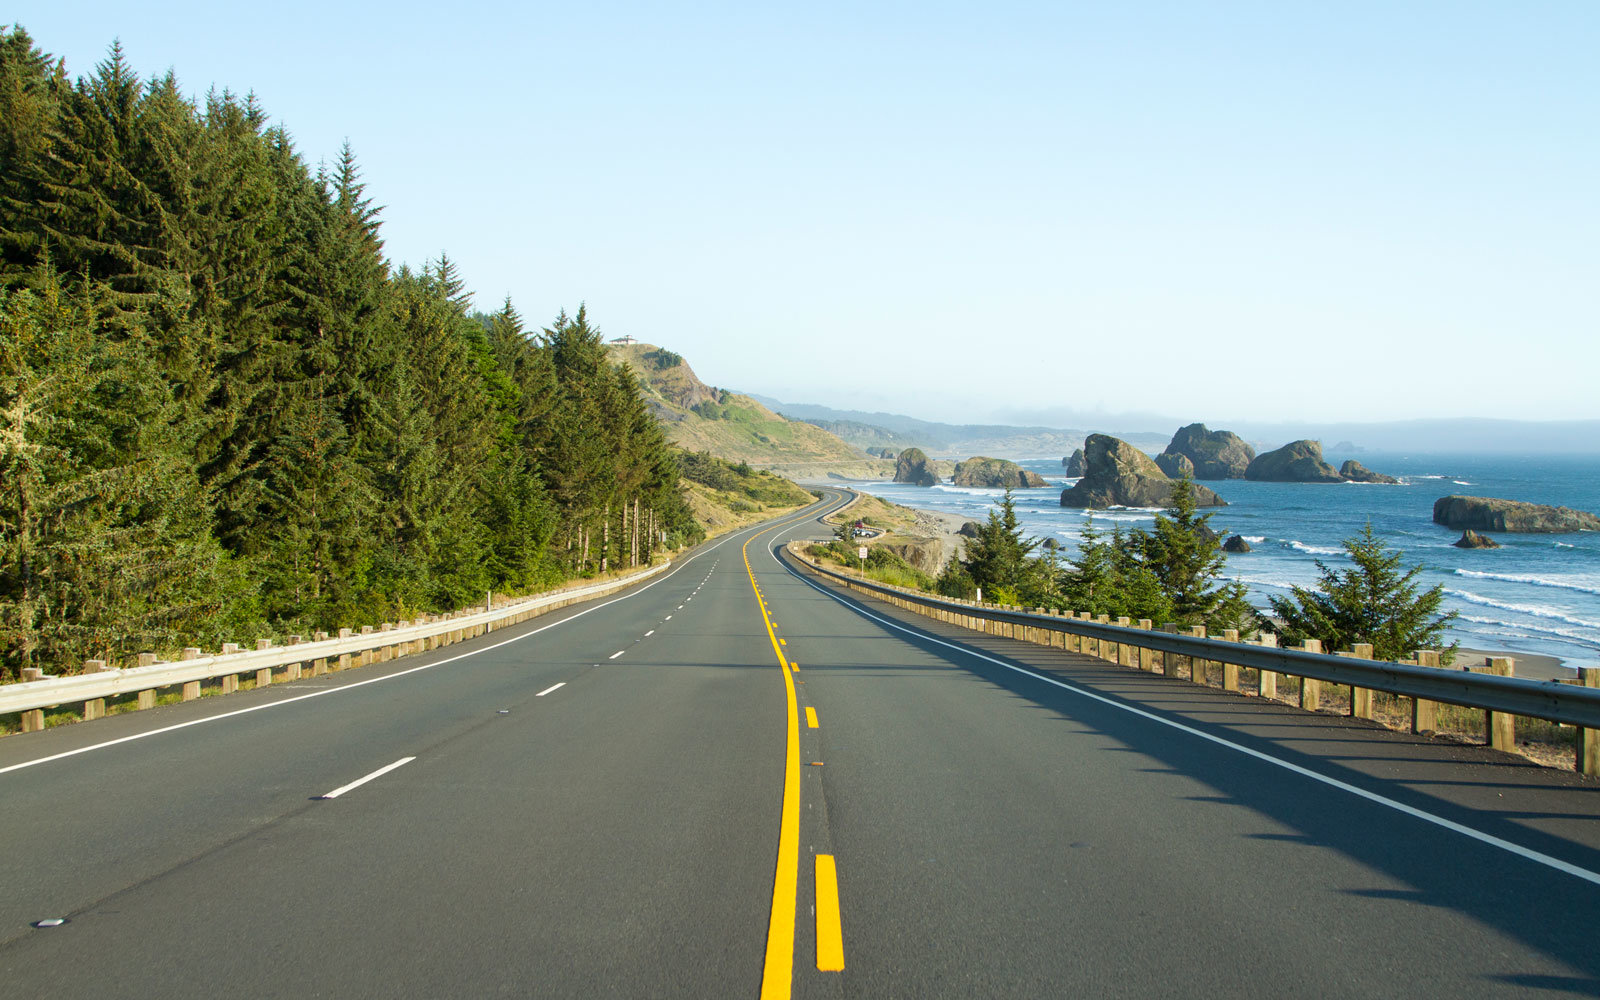 road-oregon-highway-HACKS1216.jpg